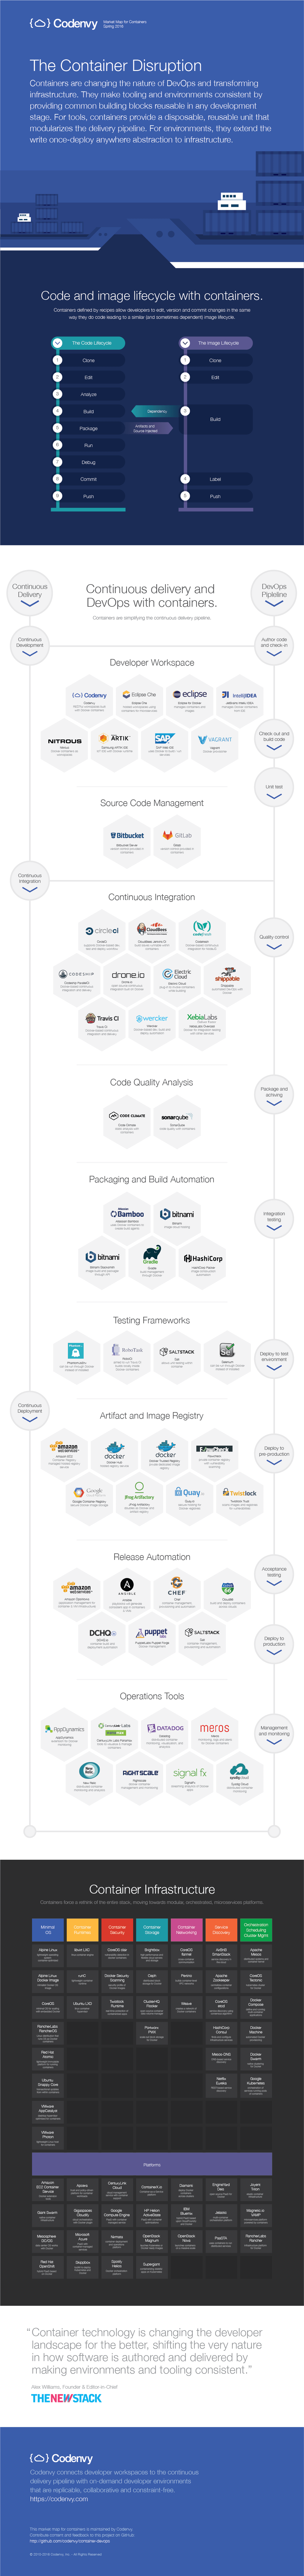 Codenvy's Market Map for Containers Spring 2016